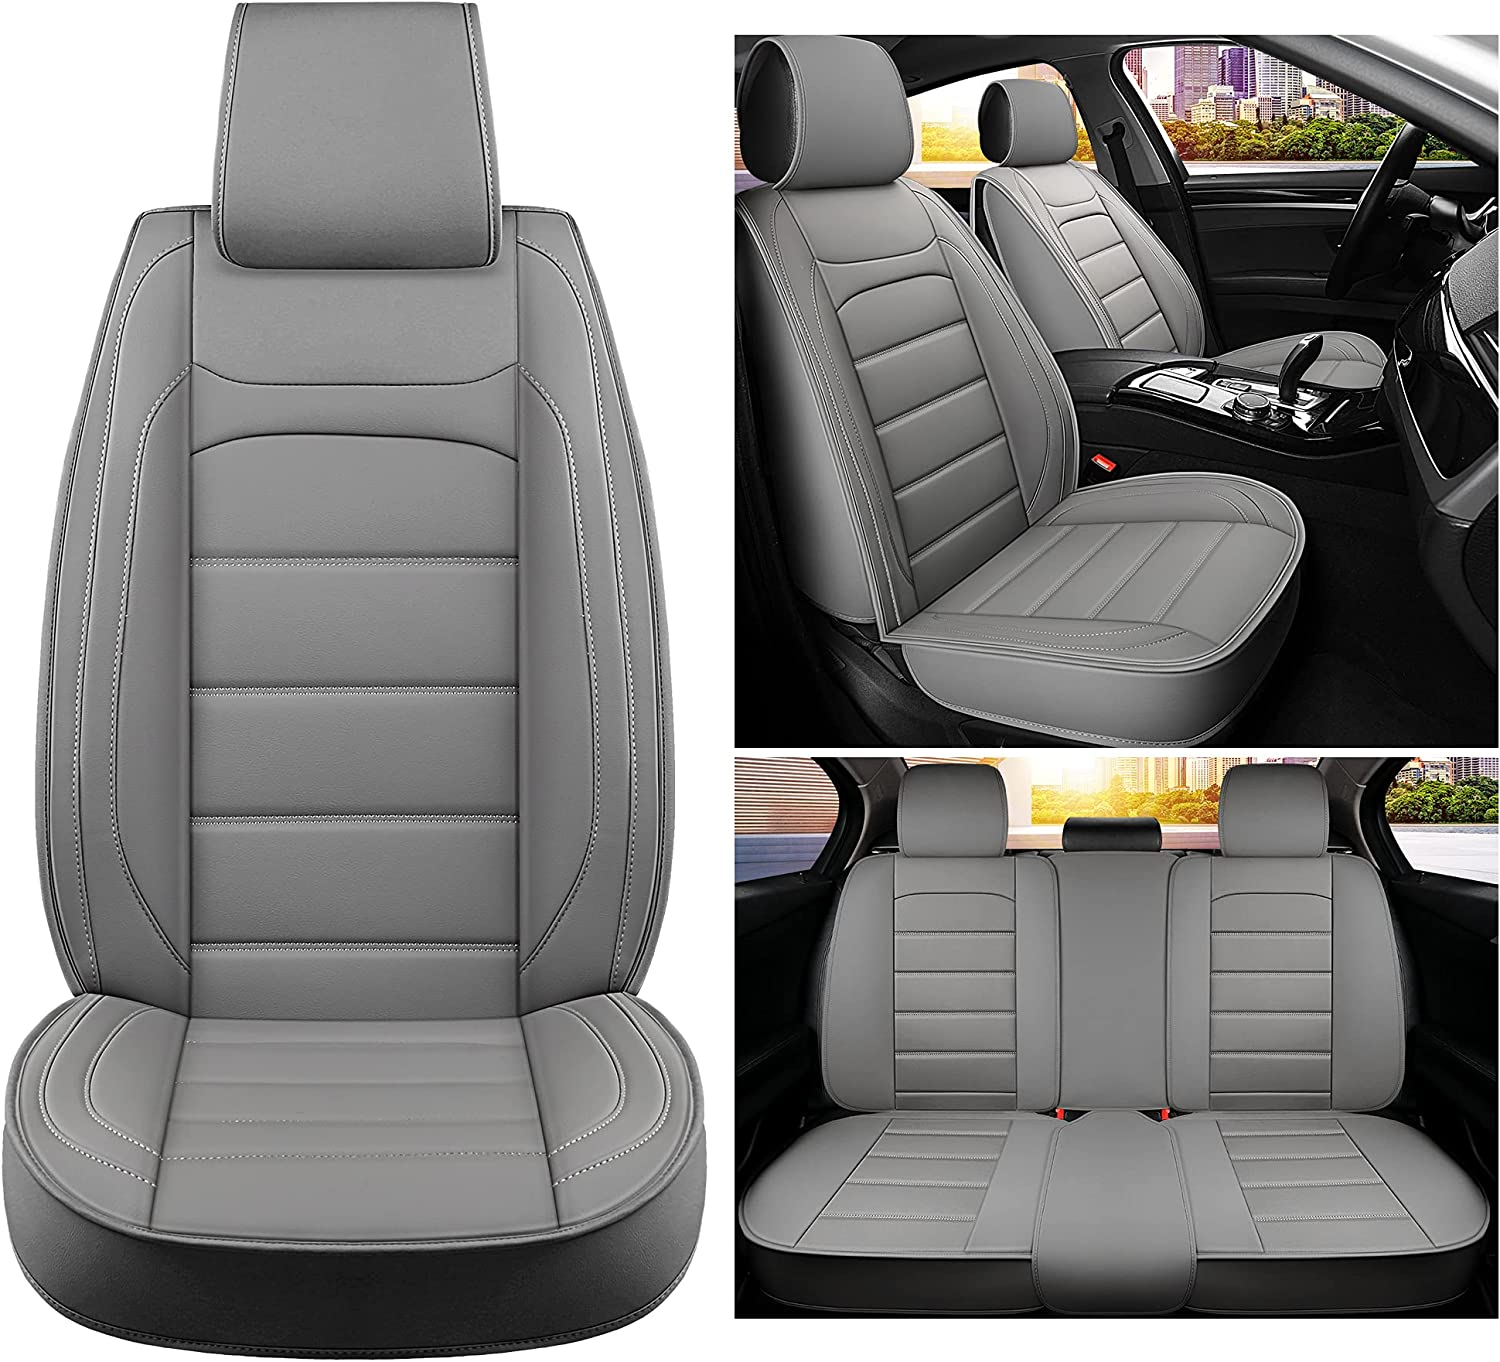 Sanwom Leather Free shipping on posting reviews Car Seat Covers Full Universal Set Store Ve Automotive